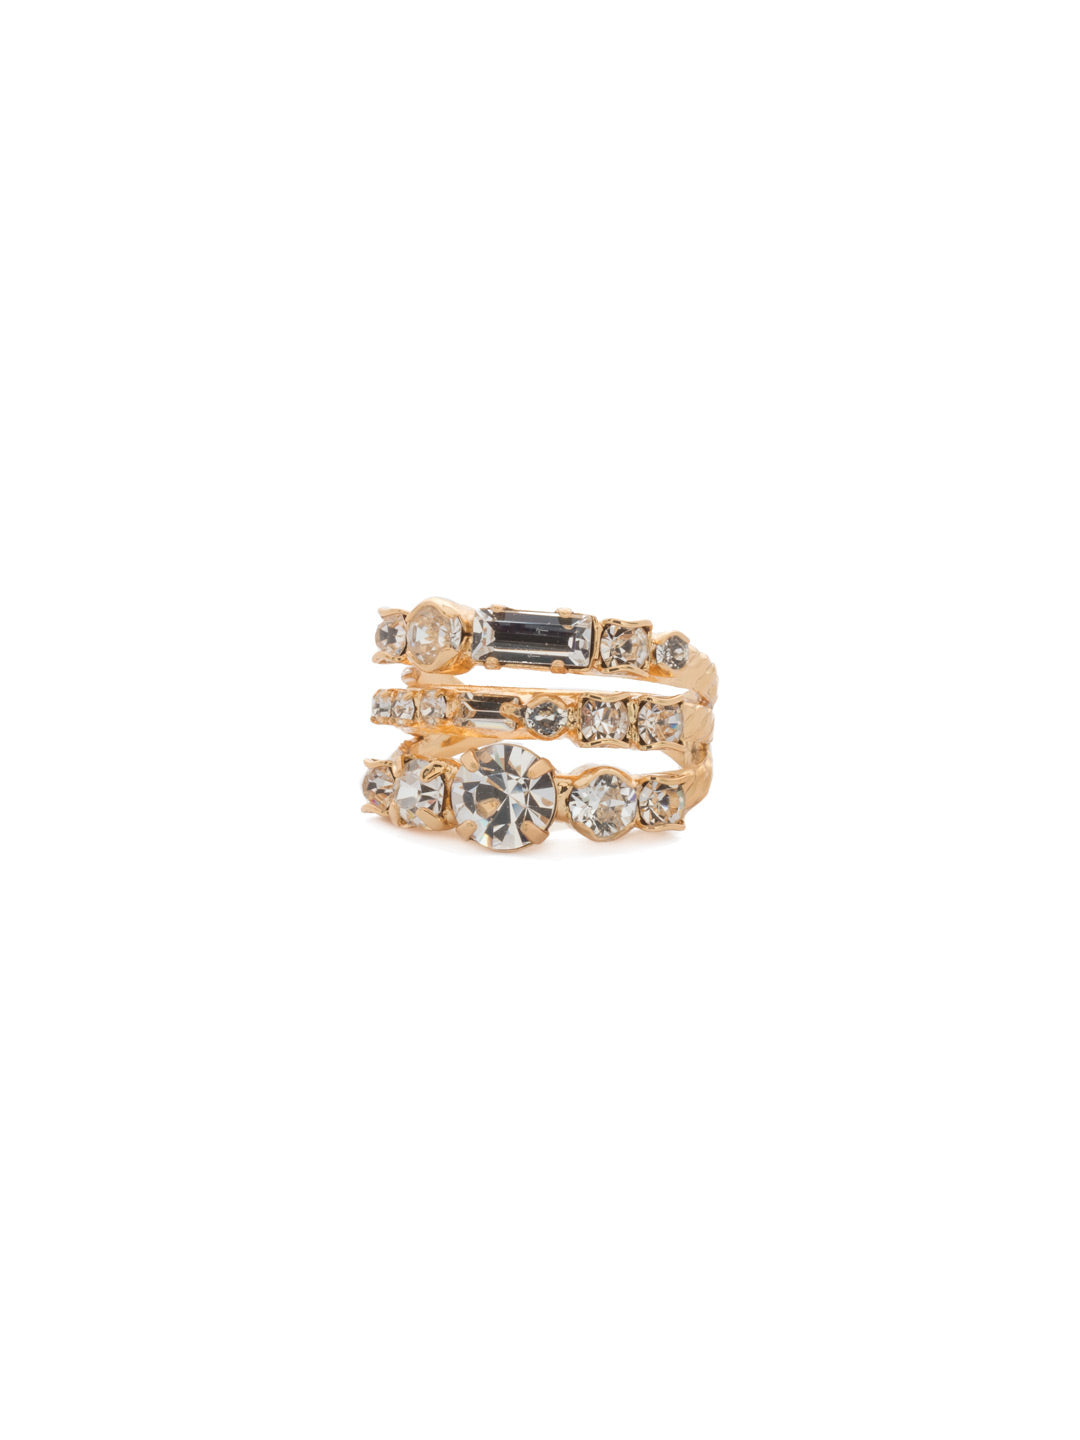 Triple Threat Stacked Ring - RDK23BGCRY